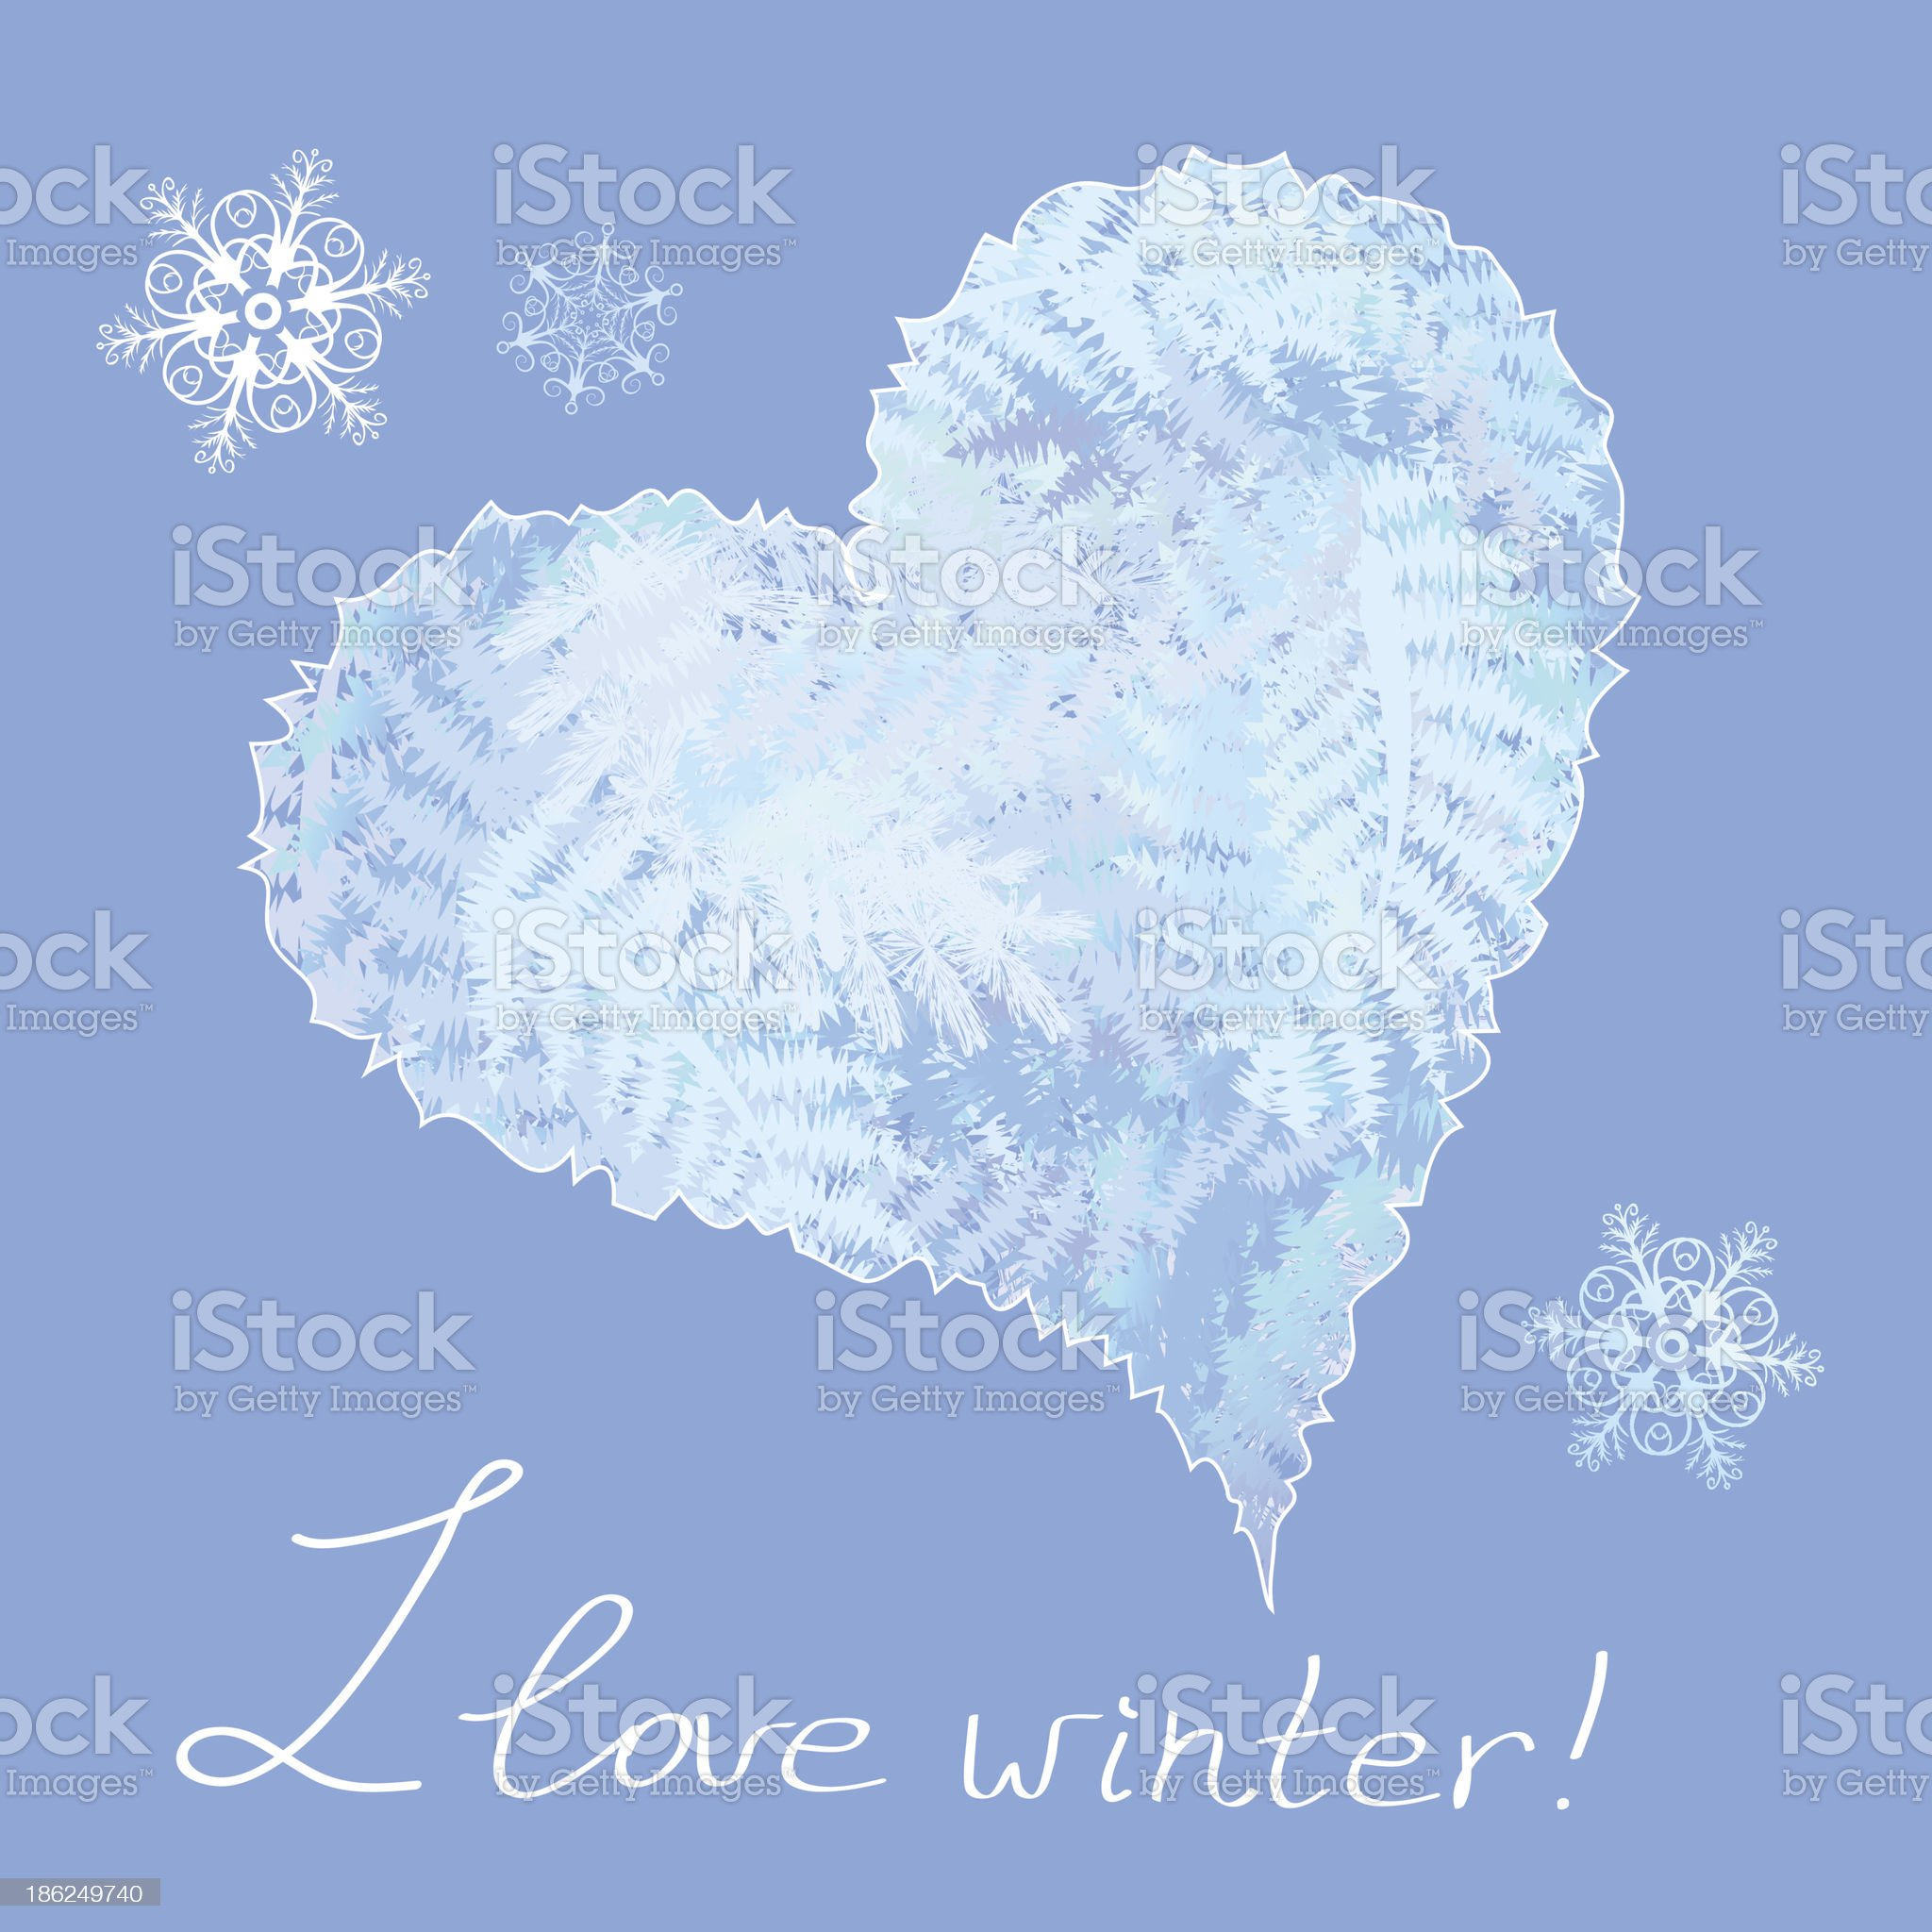 heart with frosty patterns royalty-free stock vector art